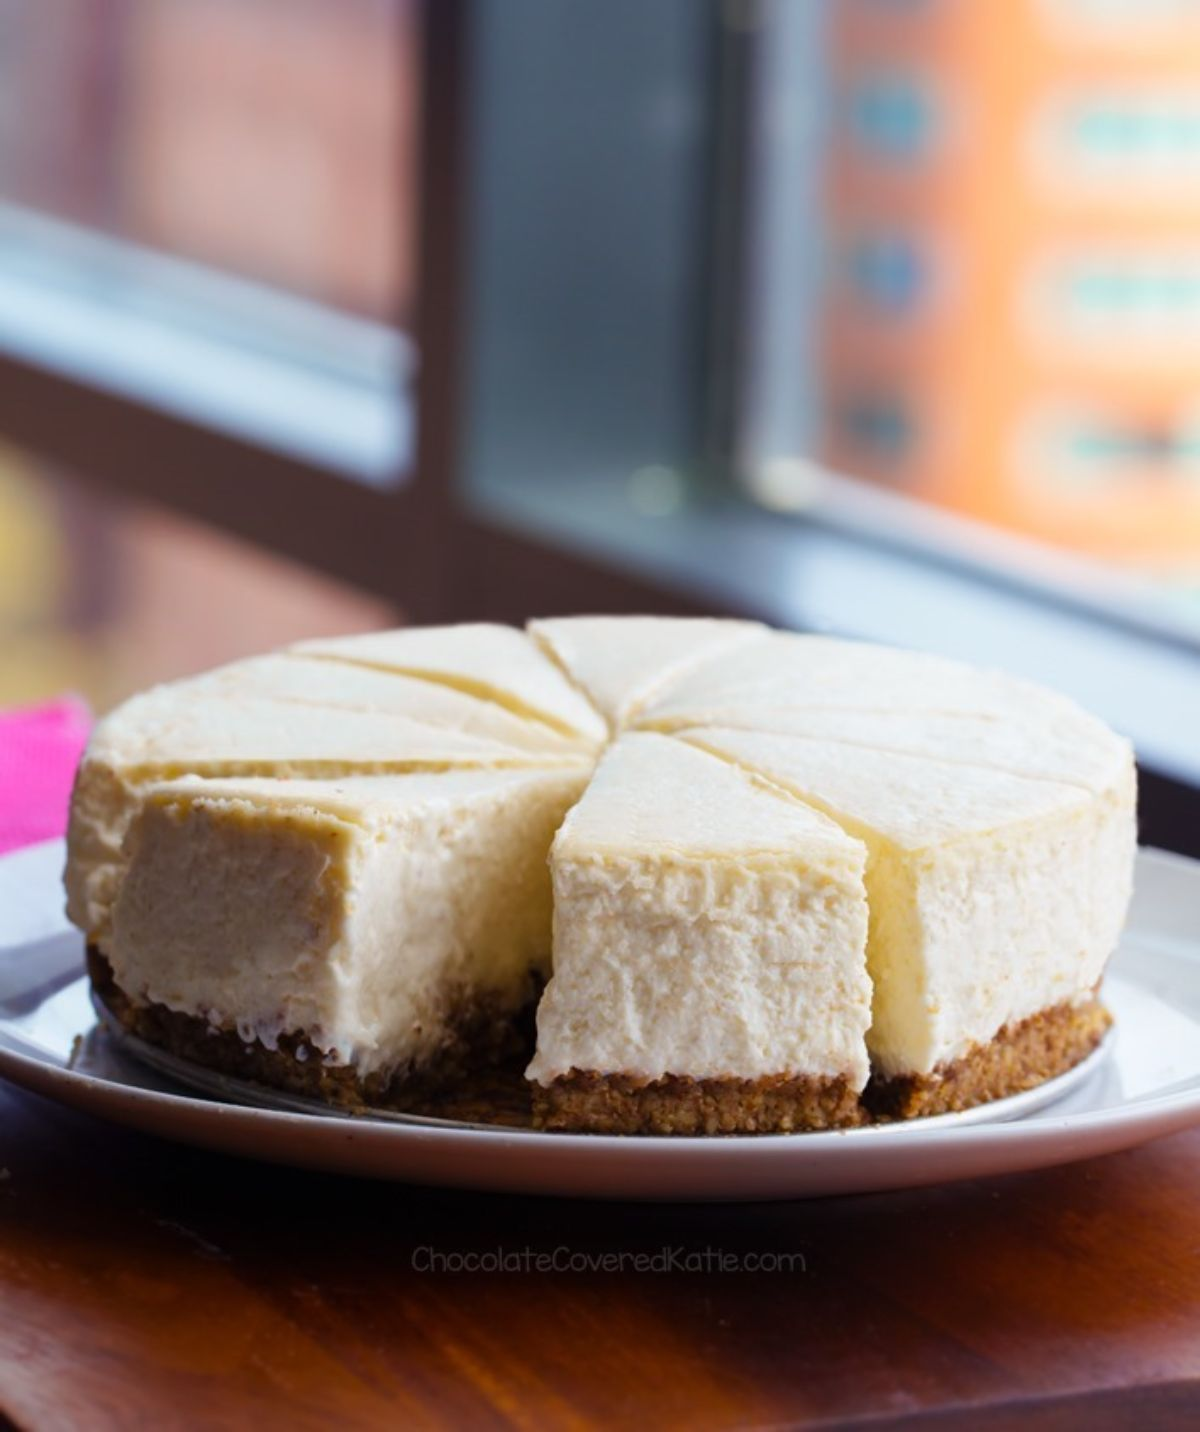 A plain cheesecake sits on a cake stand in front of a window. It has been cut into 8 slices